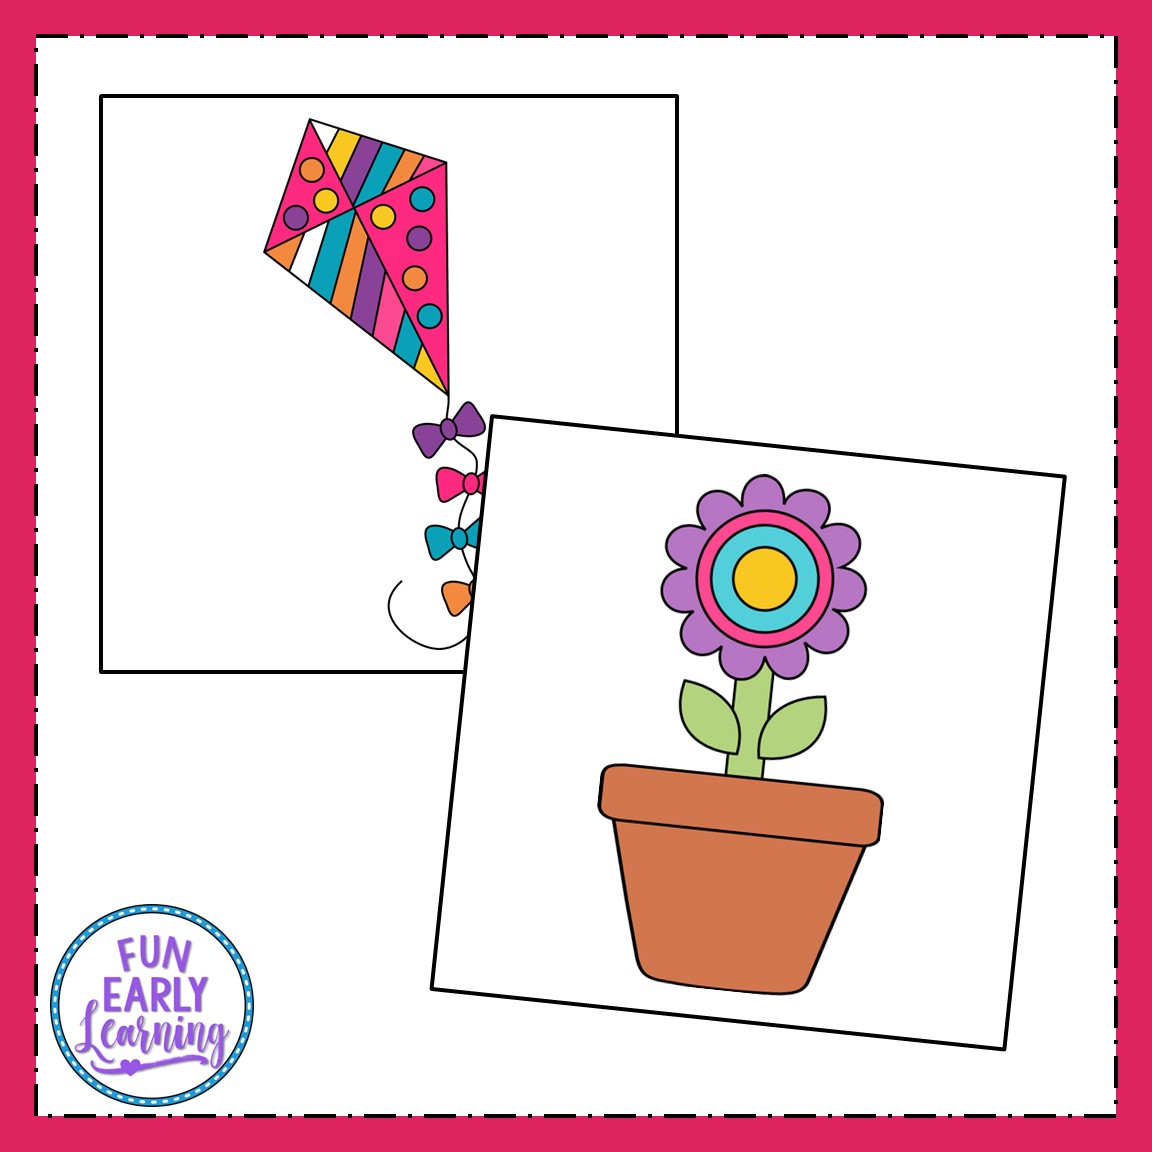 image about Printable Kid Crafts named Spring Crafts - Flower Pot, Frog, Kite, and Umbrella with